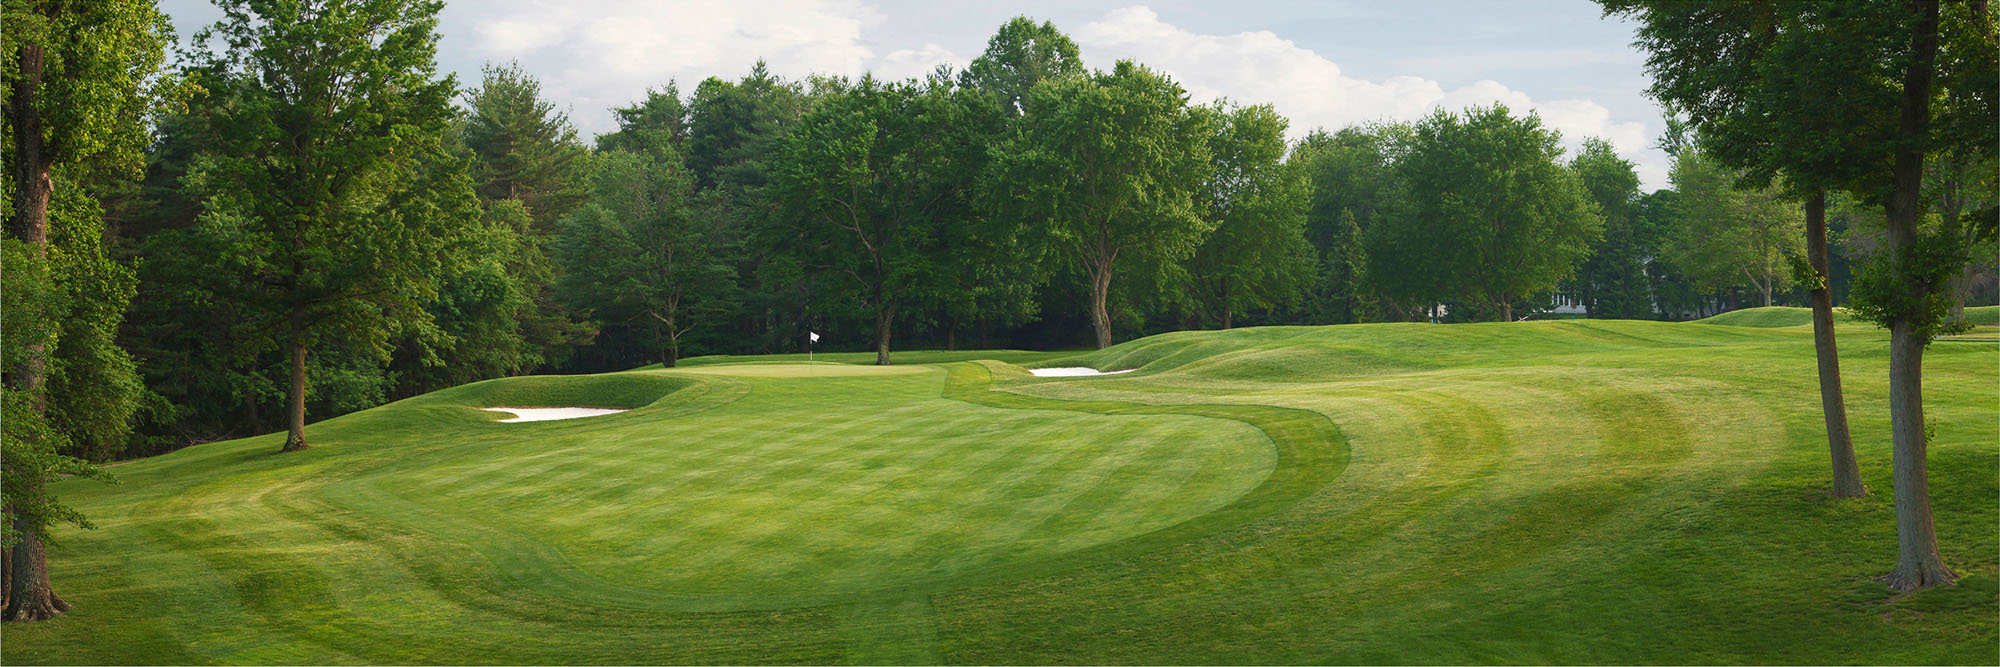 Golf Course Image - Hillendale Country Club No. 11